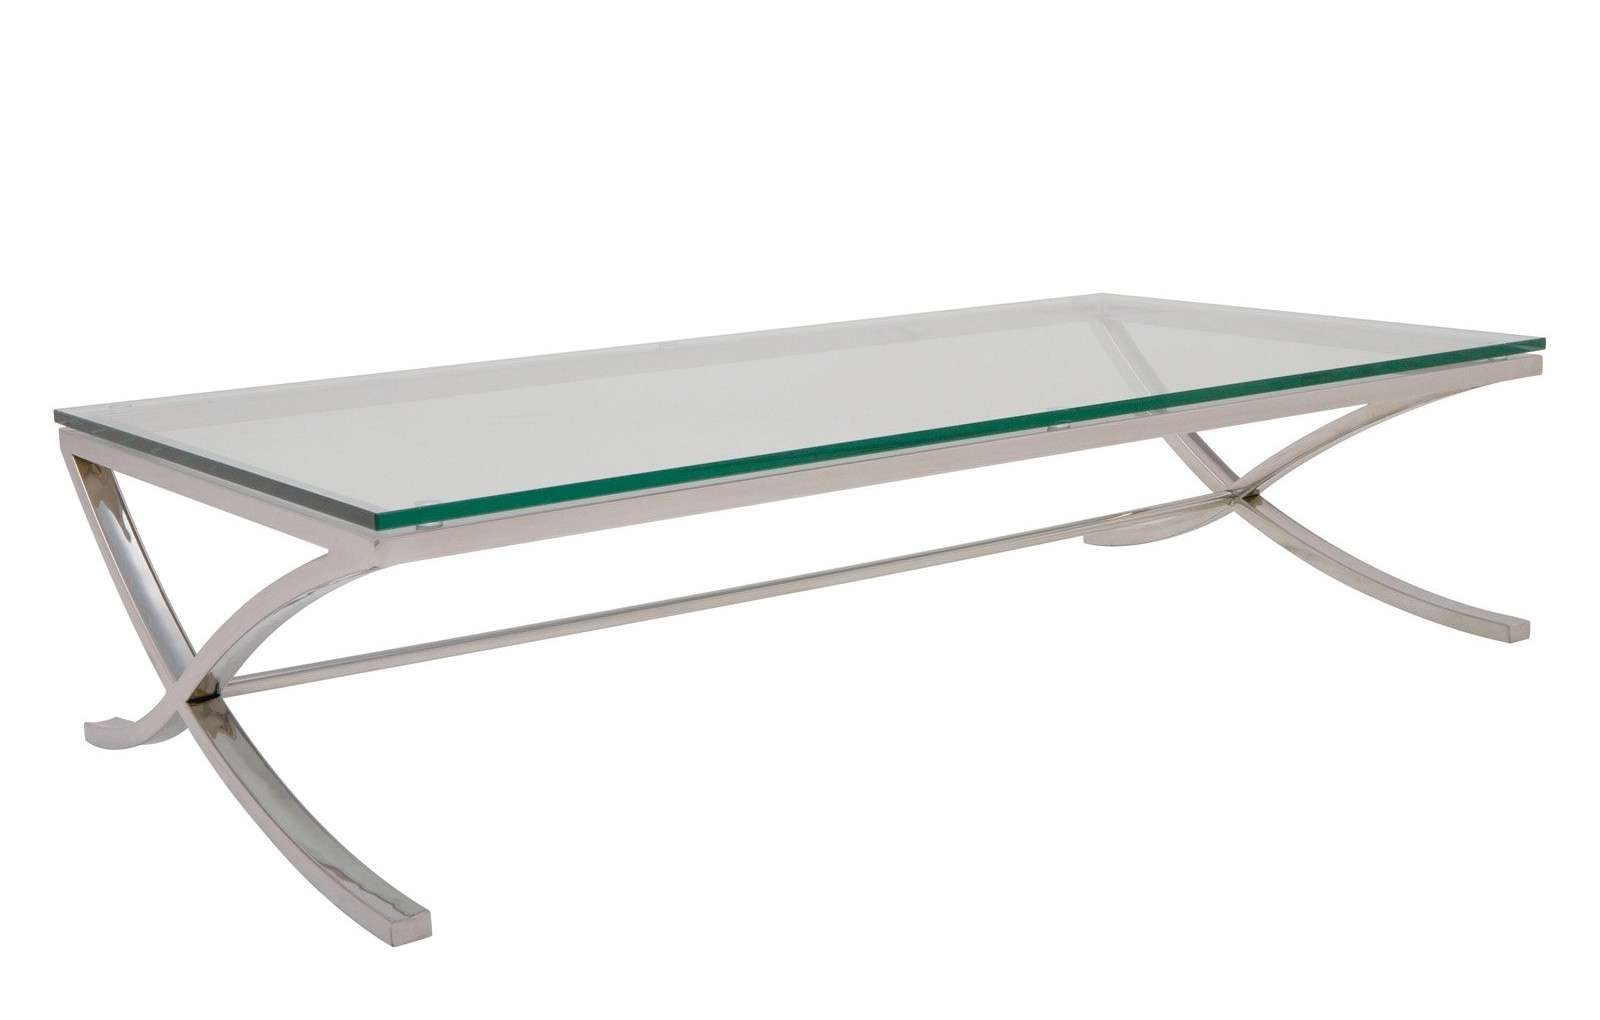 Coffee Tables Ideas: Modern Chrome And Glass Coffee Table Ikea For Newest Glass Chrome Coffee Tables (View 9 of 20)